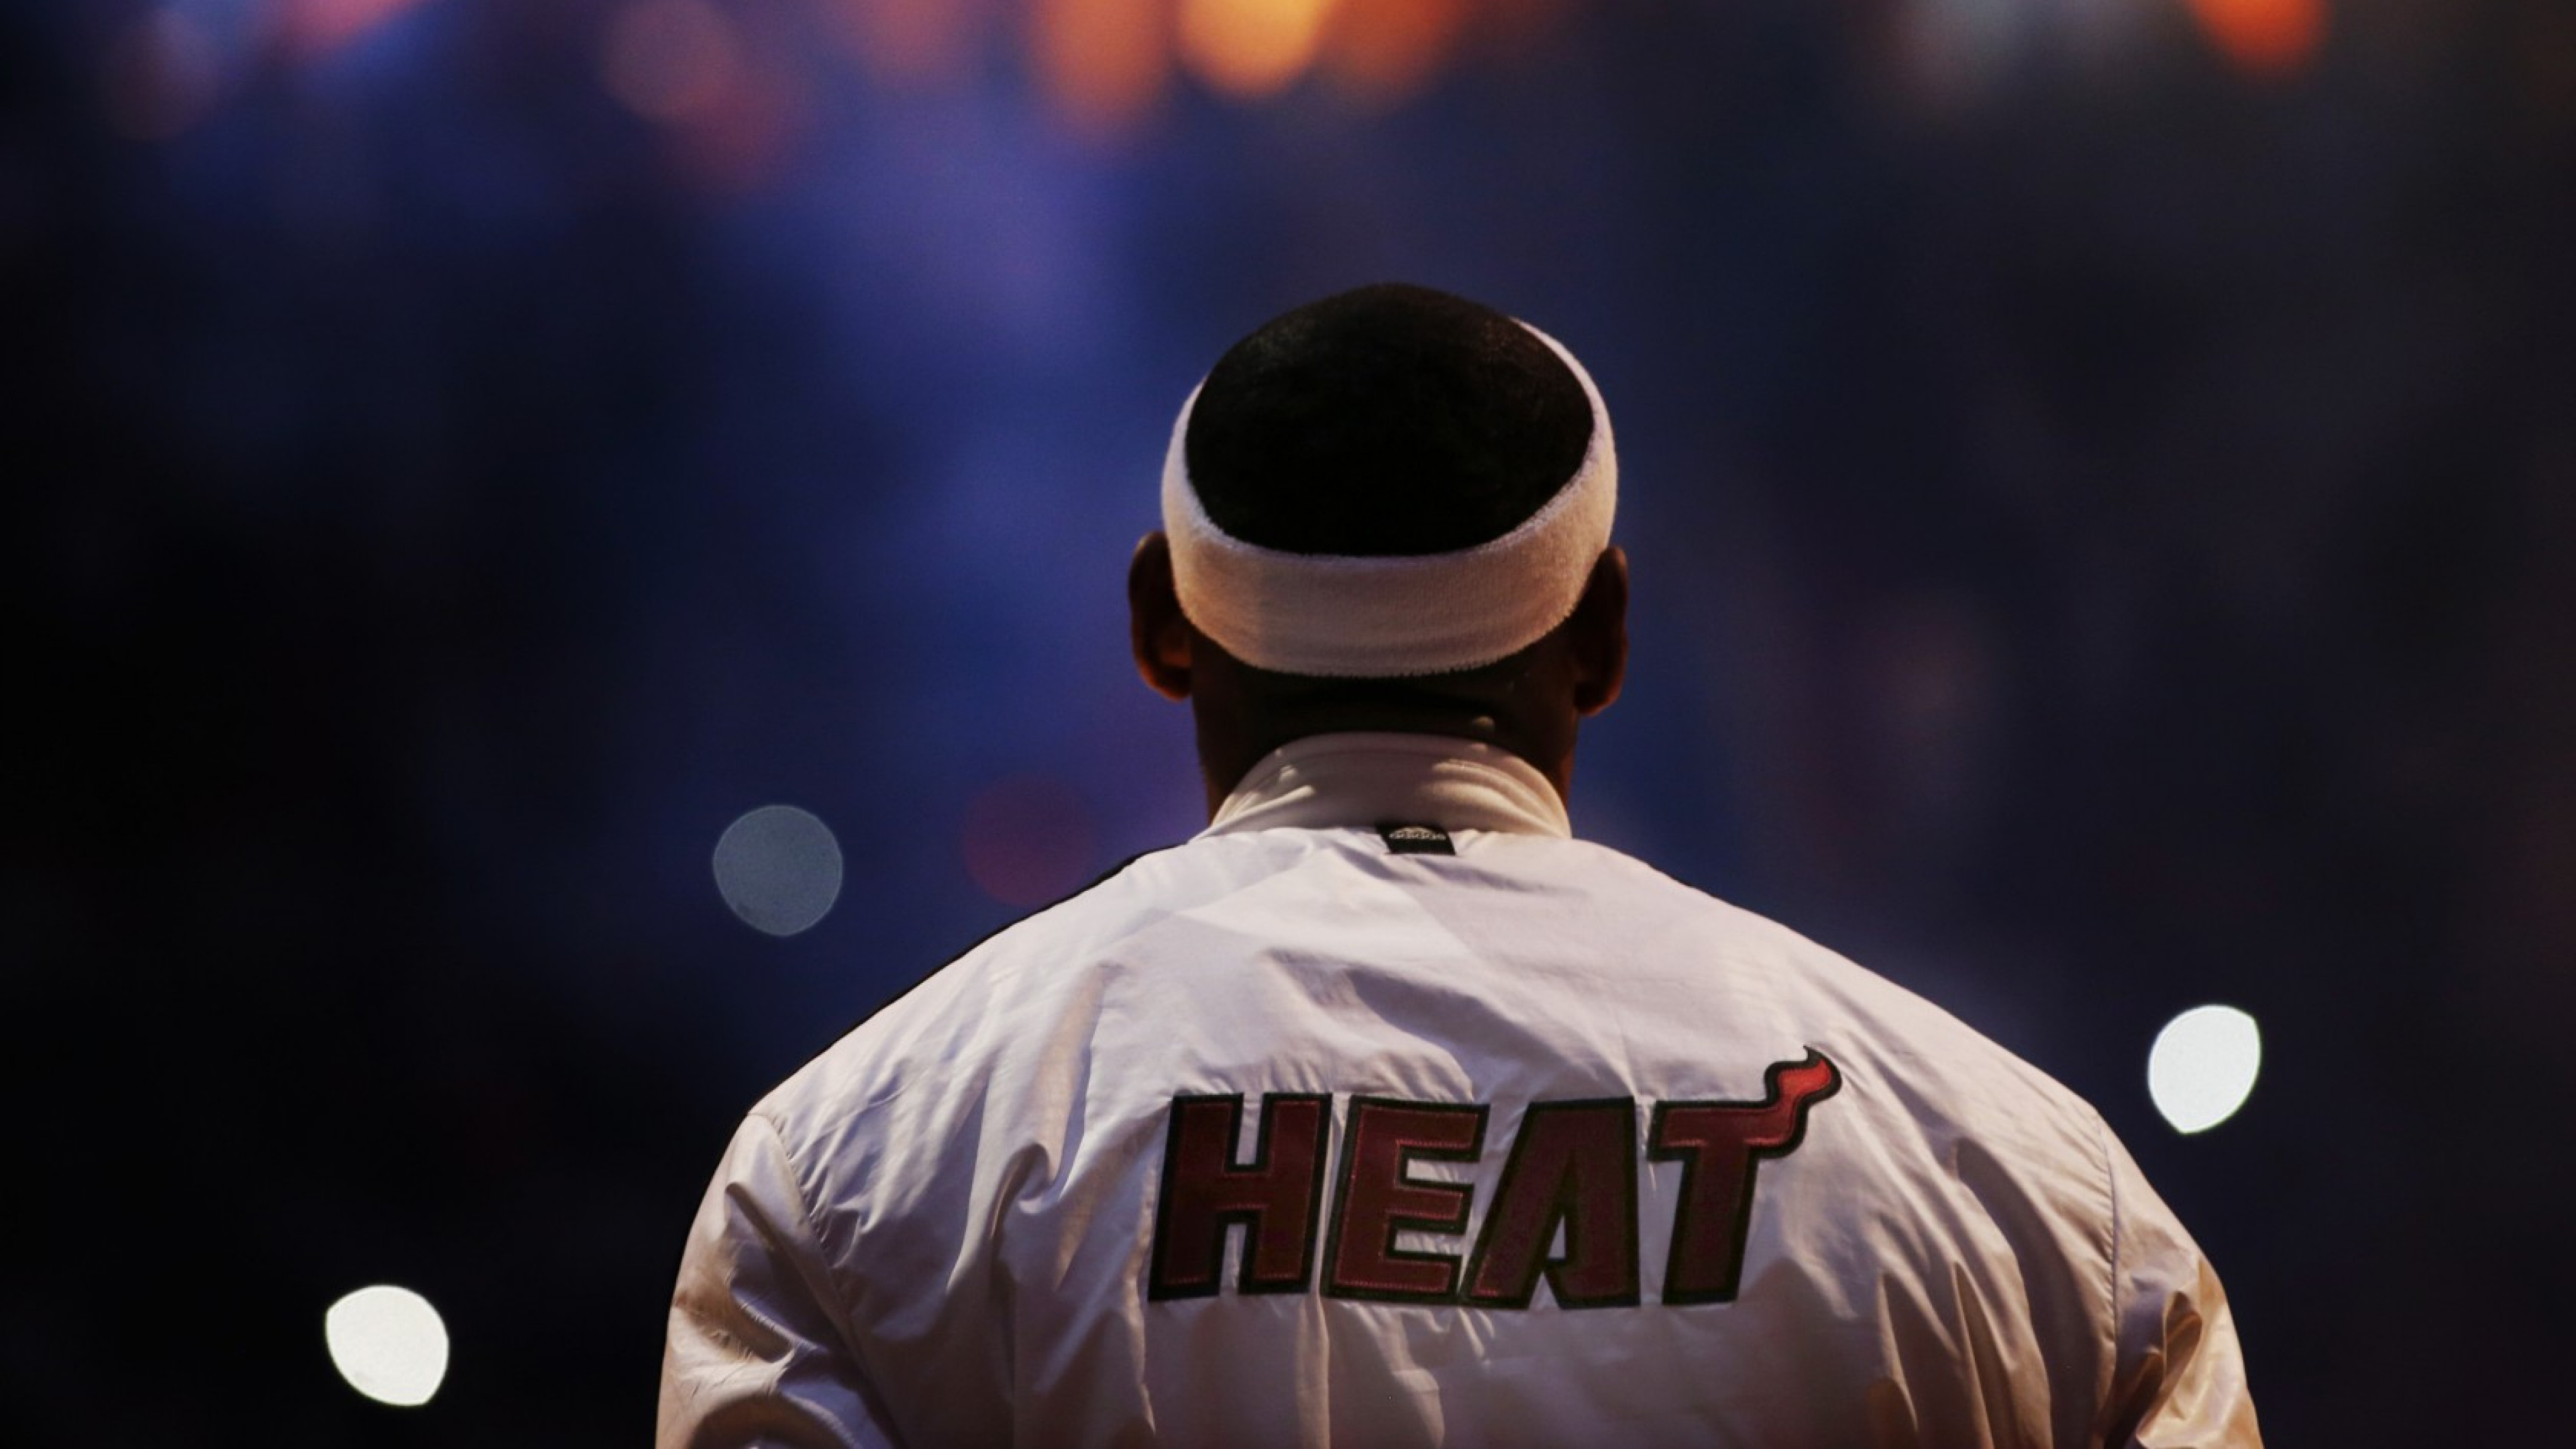 3840x2160  Wallpaper lebron james, miami heat, basketball, sports, nba